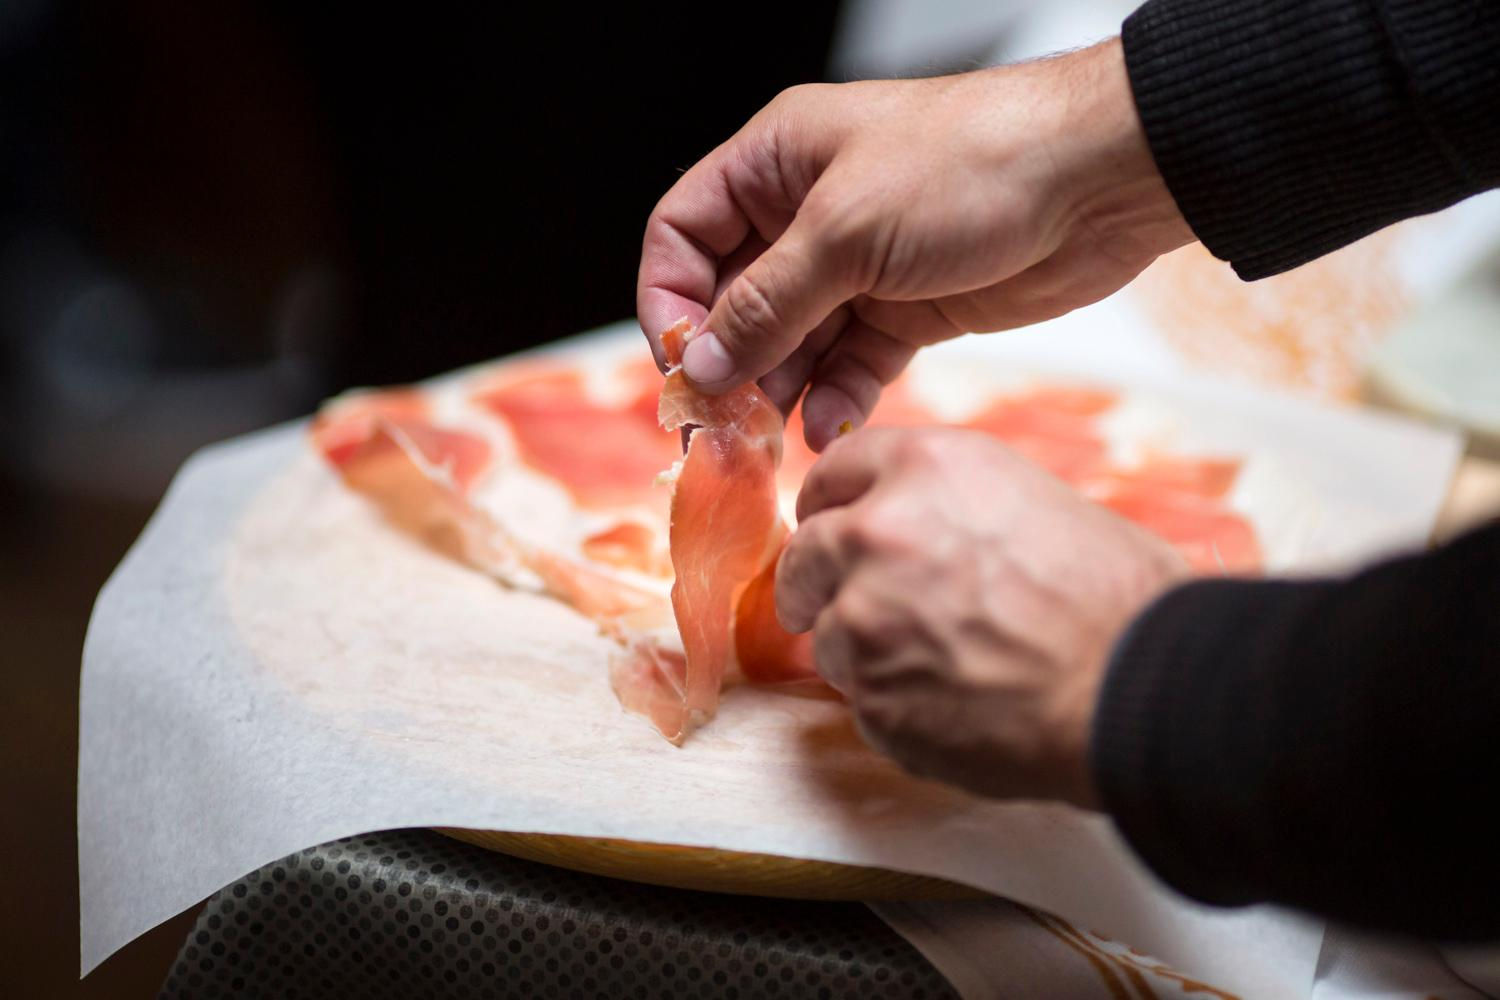 Pietro Borghesi, co-founder of La Spiga, cuts into the Proscuitto di Parma. This pig thigh had been hanging for two and half years. Each piece is hand cut, so it is a tedious process but would lose flavor if cut through a meat slicer. (Image: Sy Bean / Seattle Refined).